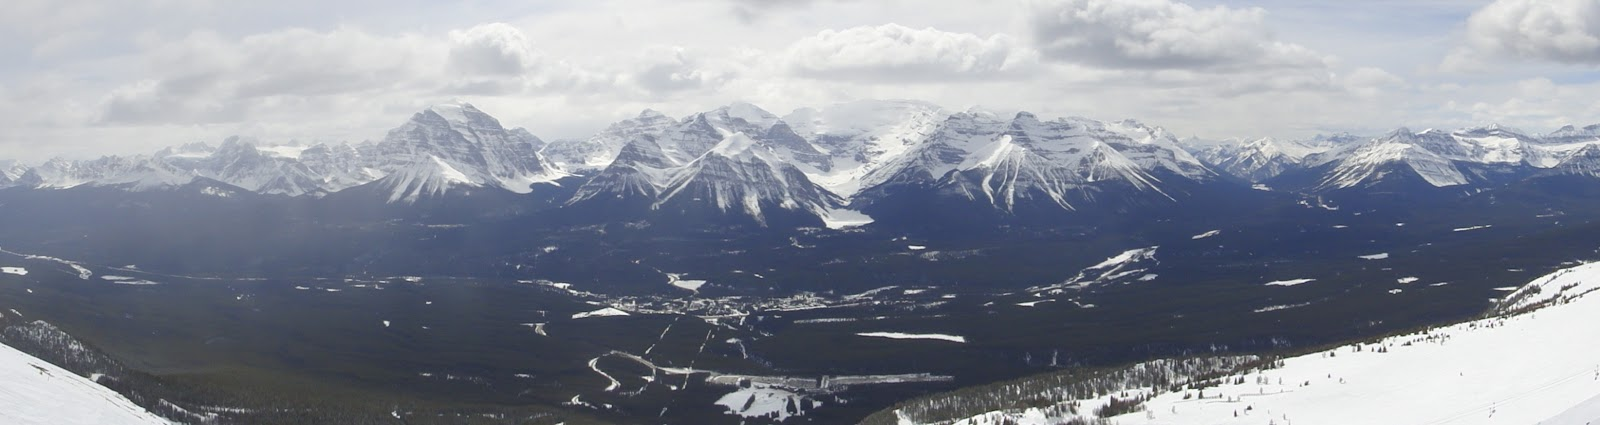 001 - Lake Louise Pano